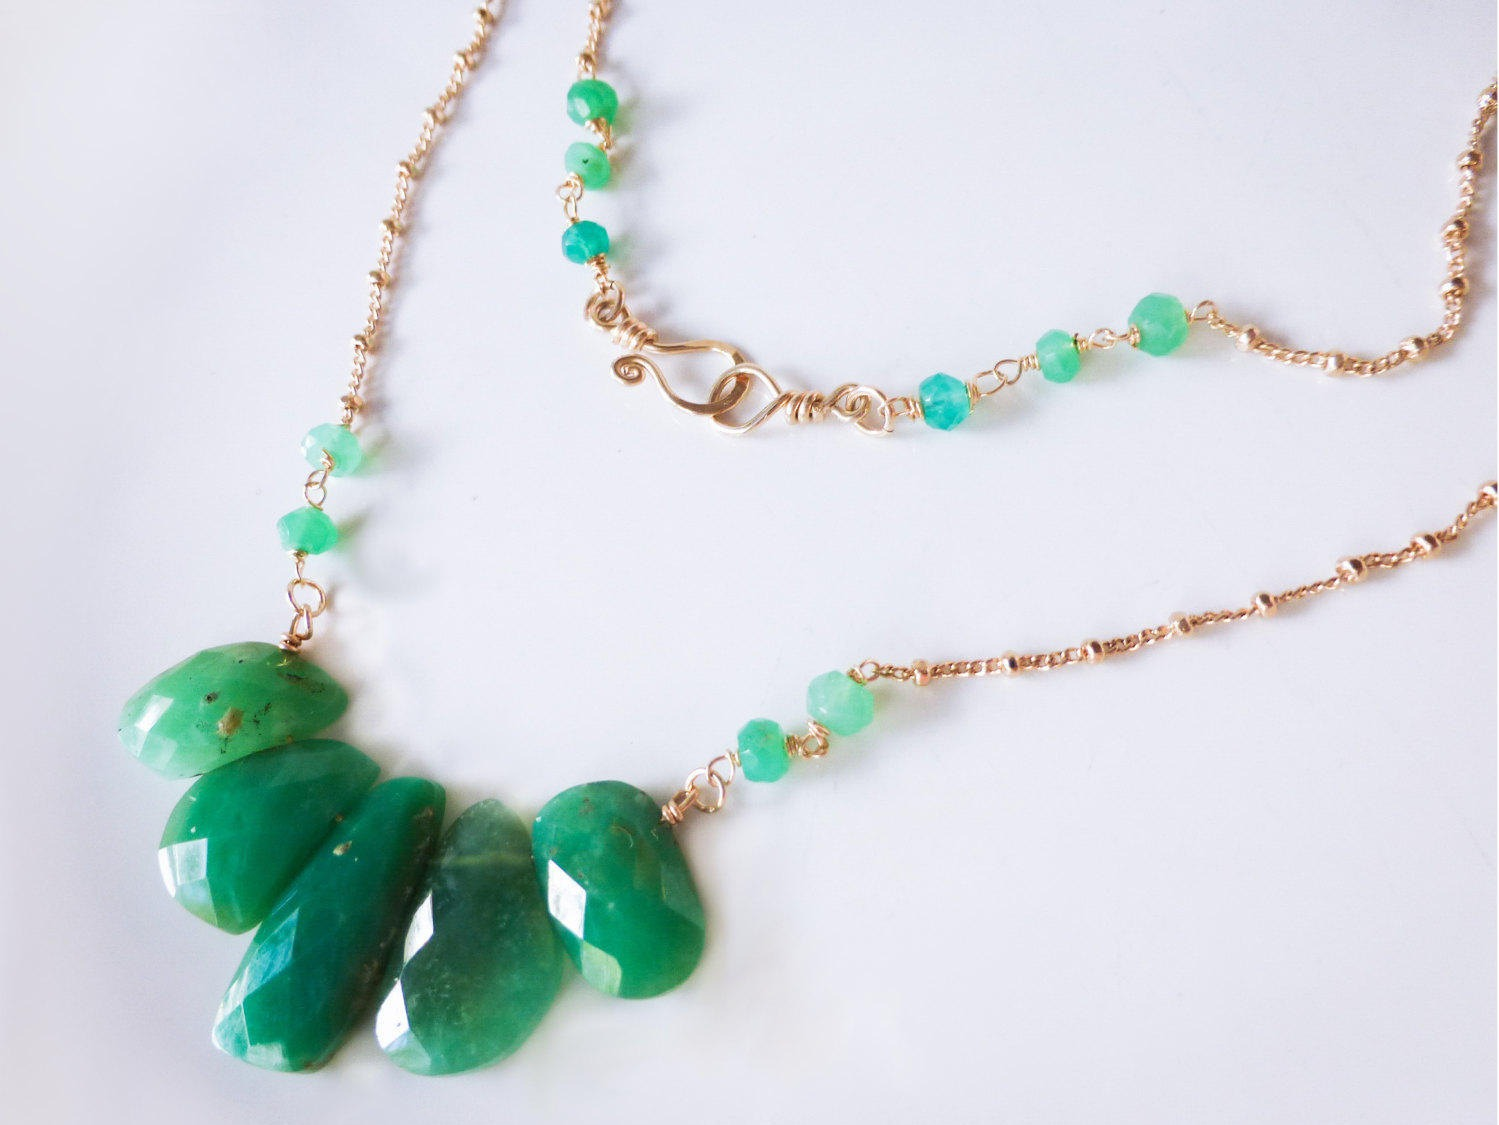 cosmos betel made chrysoprase ora product from spring and collection diamonds oraspringjewelry playing with the diamond gold pendant chrysopras of necklace